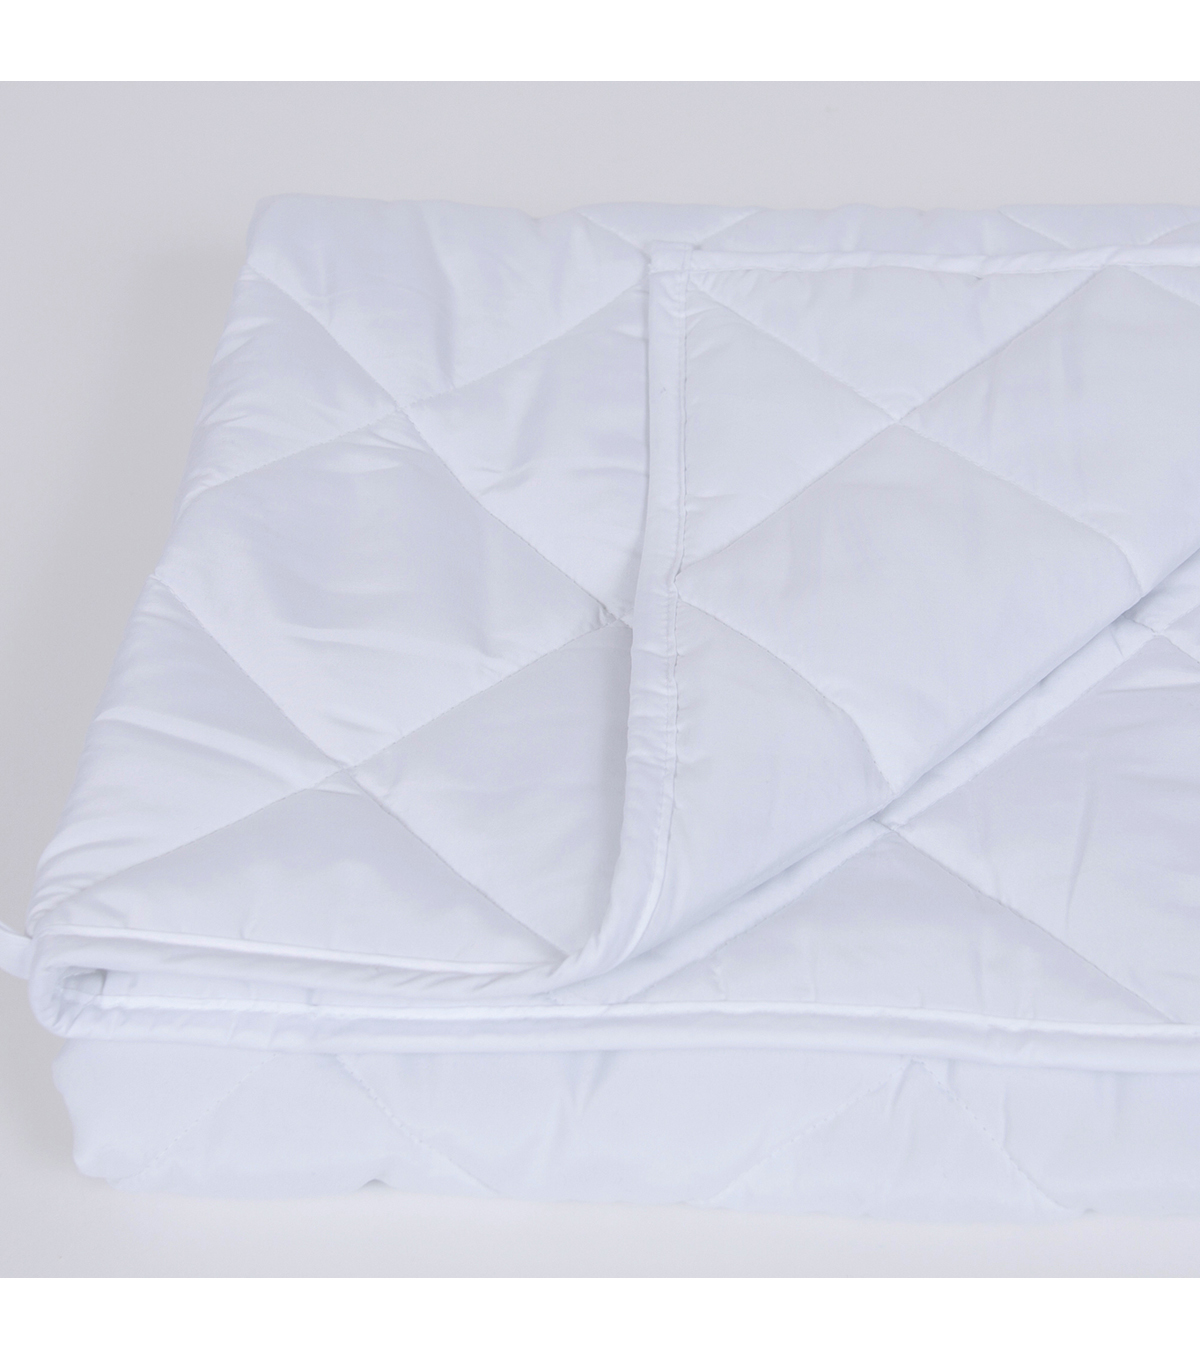 Fairfield Weighted Blanket Insert